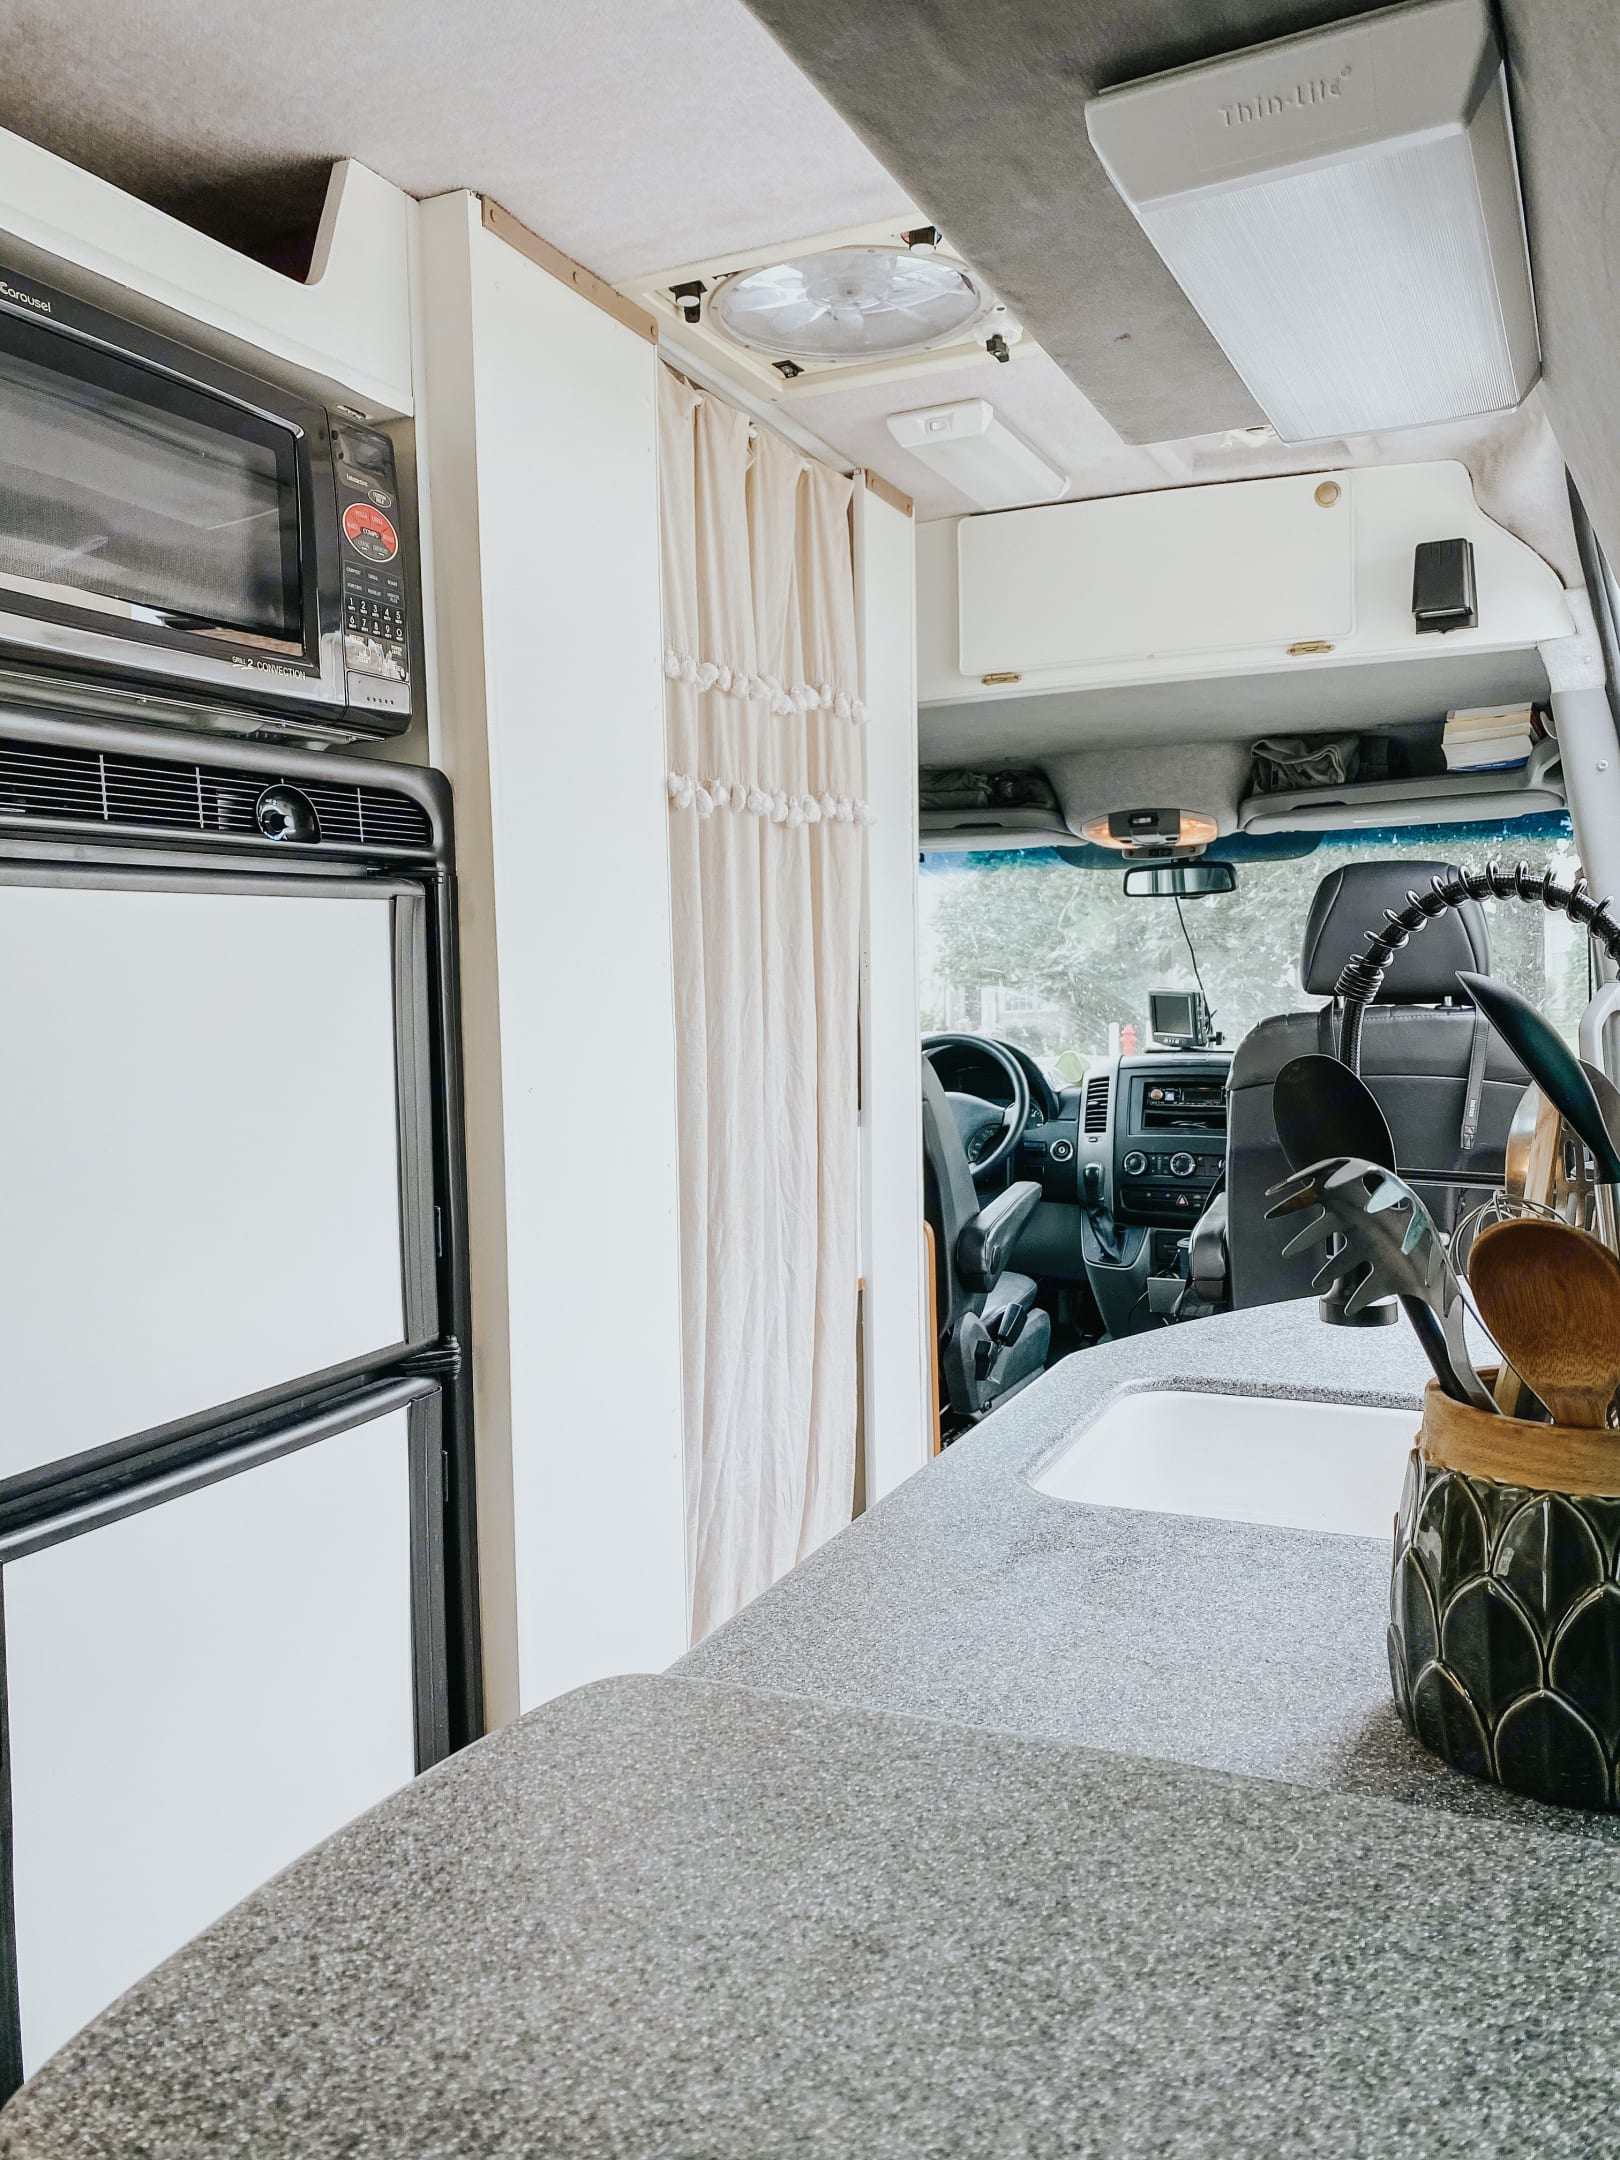 The cab has a touchscreen media player with CarPlay, bluetooth, or USB connection. Also a separate backup camera help with maneuverability.. Mercedes-Benz Sprinter 2007